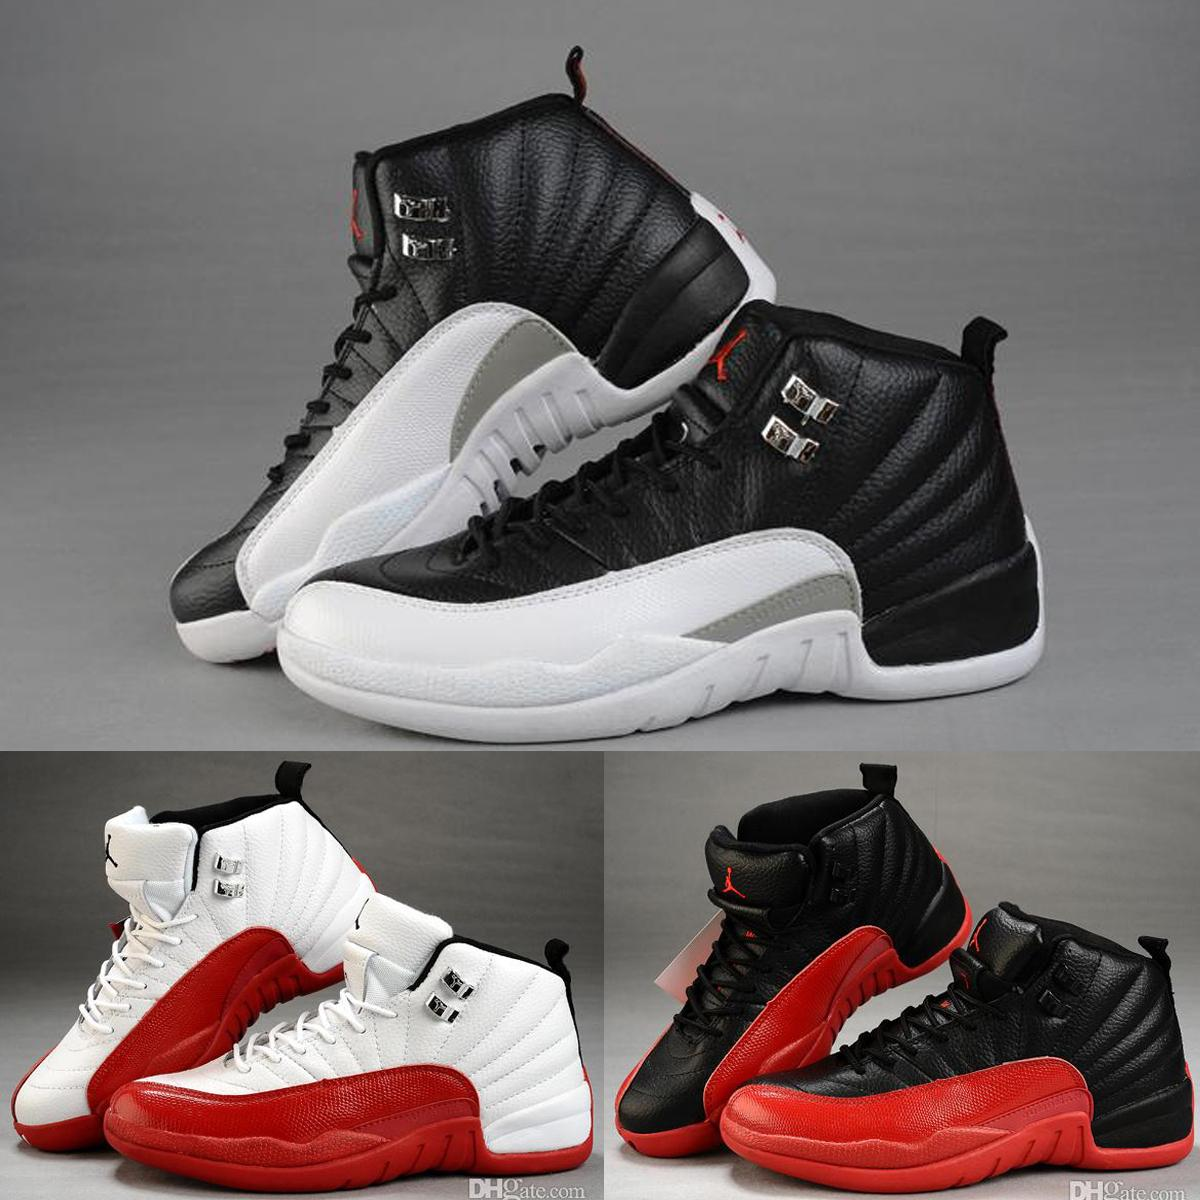 Nike Air Jordan 12 Xii Taxi Playoff Black Flu Game Cherry Mens Womens  Basketball Shoes, Brand New Aj12 Retro 12 Xii Men Sneakers J12s Us8 13  Barkley Shoes ...